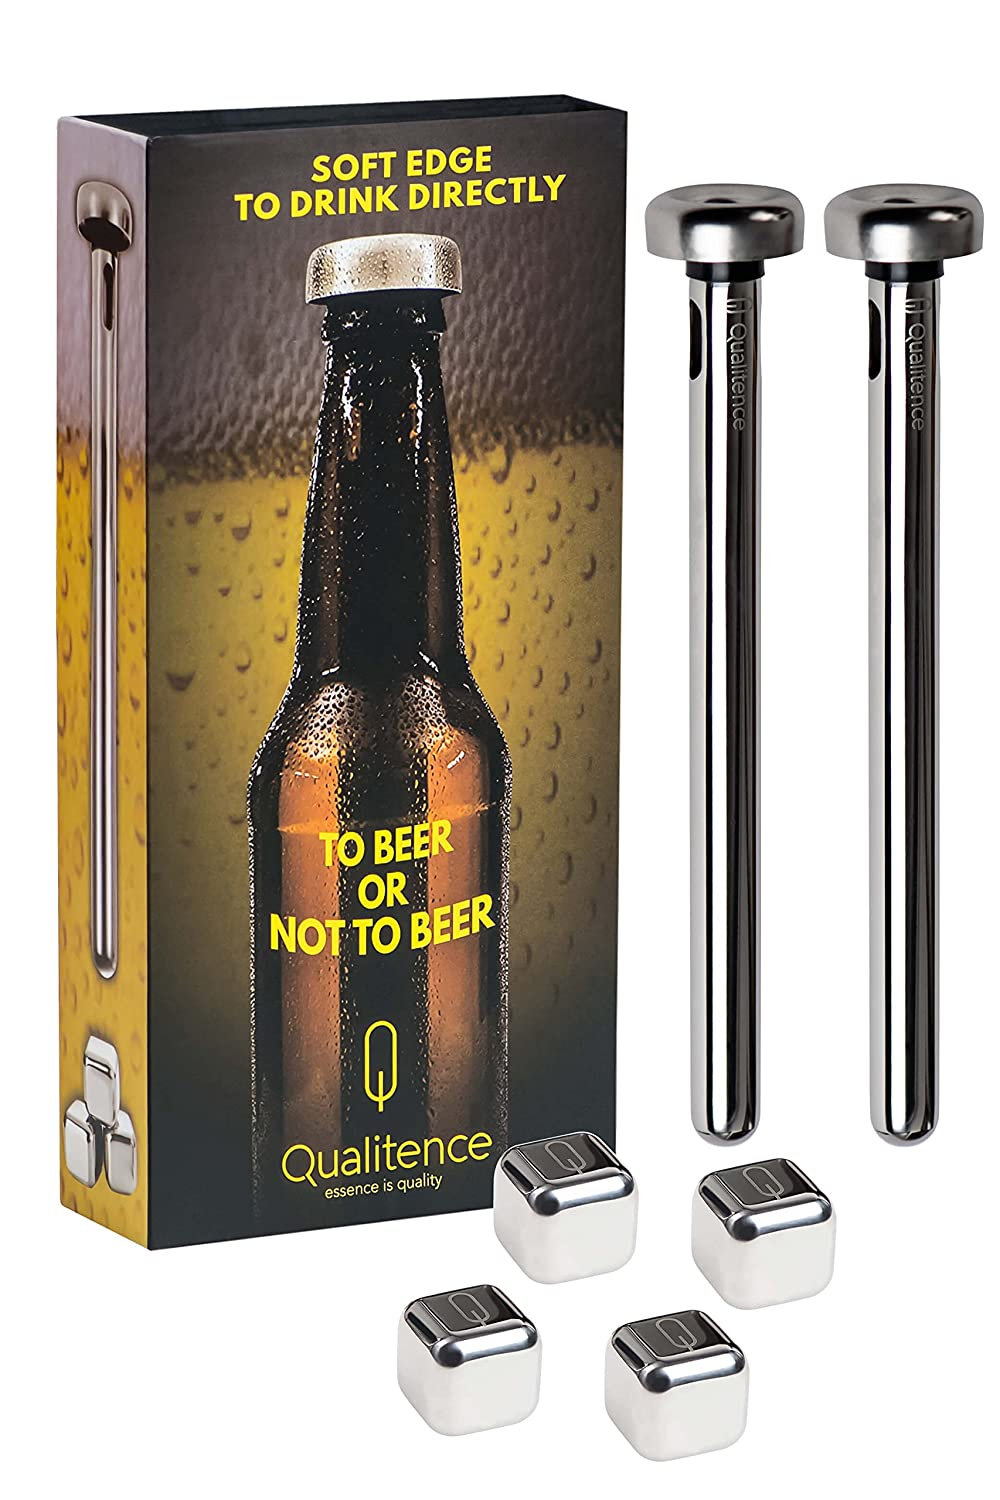 Beer Chiller Sticks & Stainless Steel Ice Cubes by Qualitence | Set of 2 Beer Chillers to keep drinks cold, smooth oval holes for drinking | Birthday Gift for Men | 4 Reusable ice cubes for whiskey